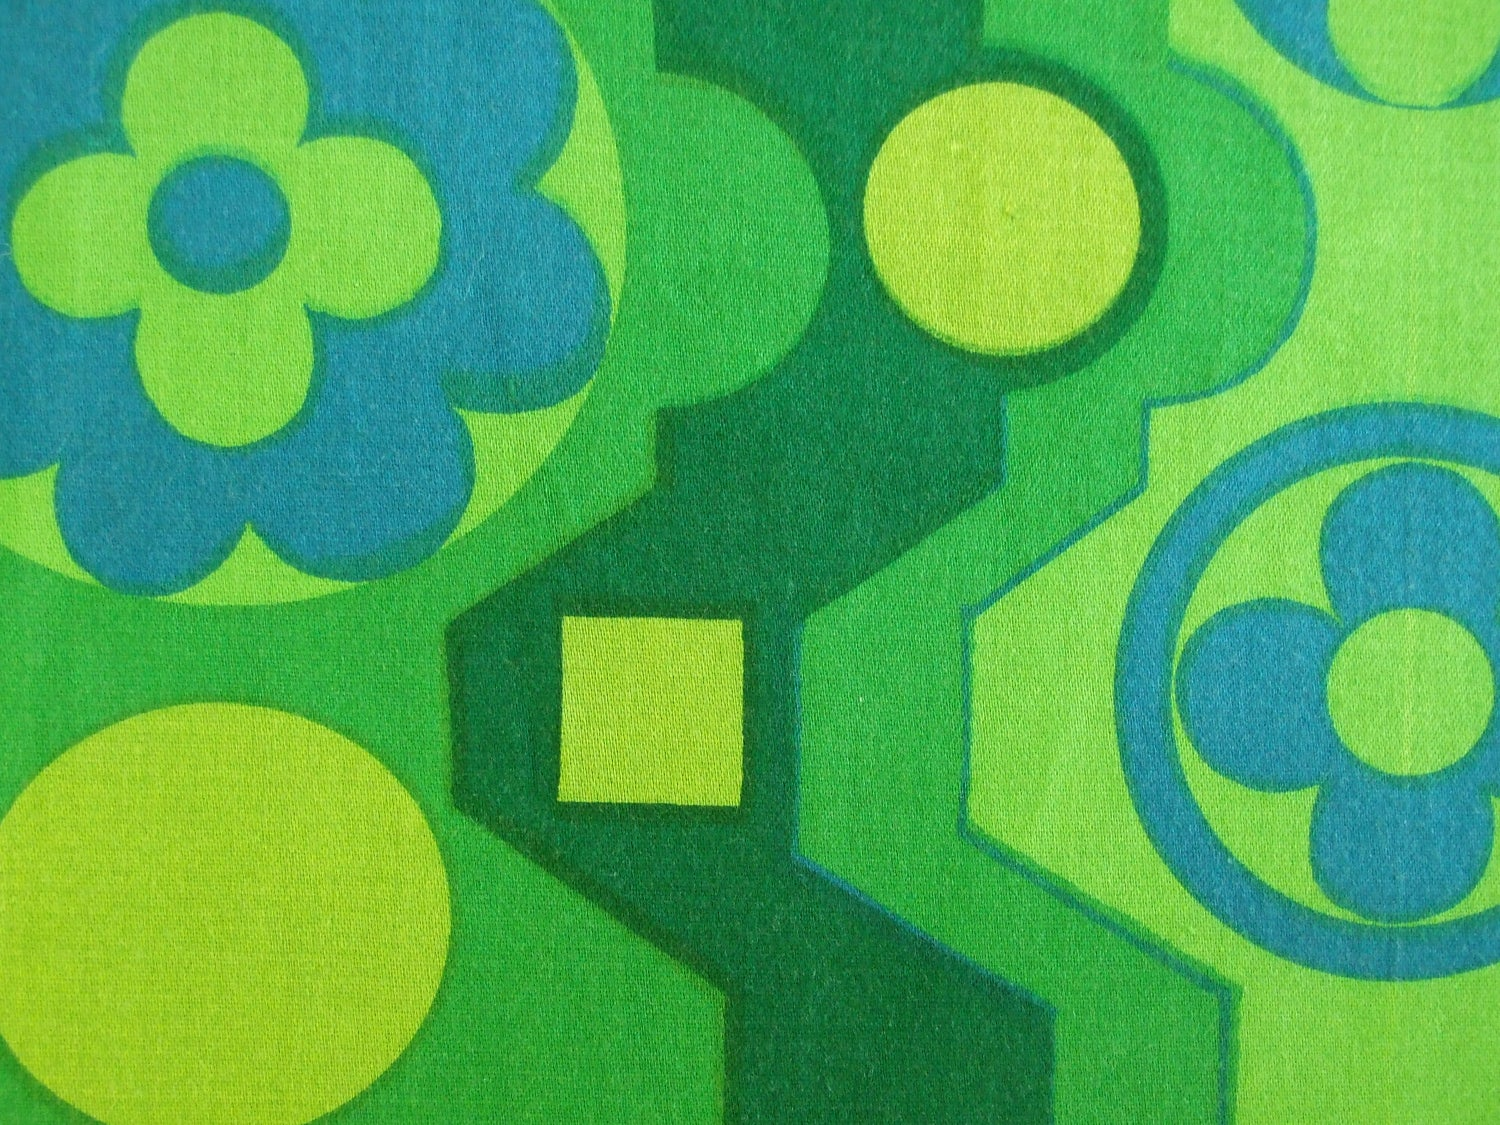 Image of Francis Price 'Malaga' vintage fabric